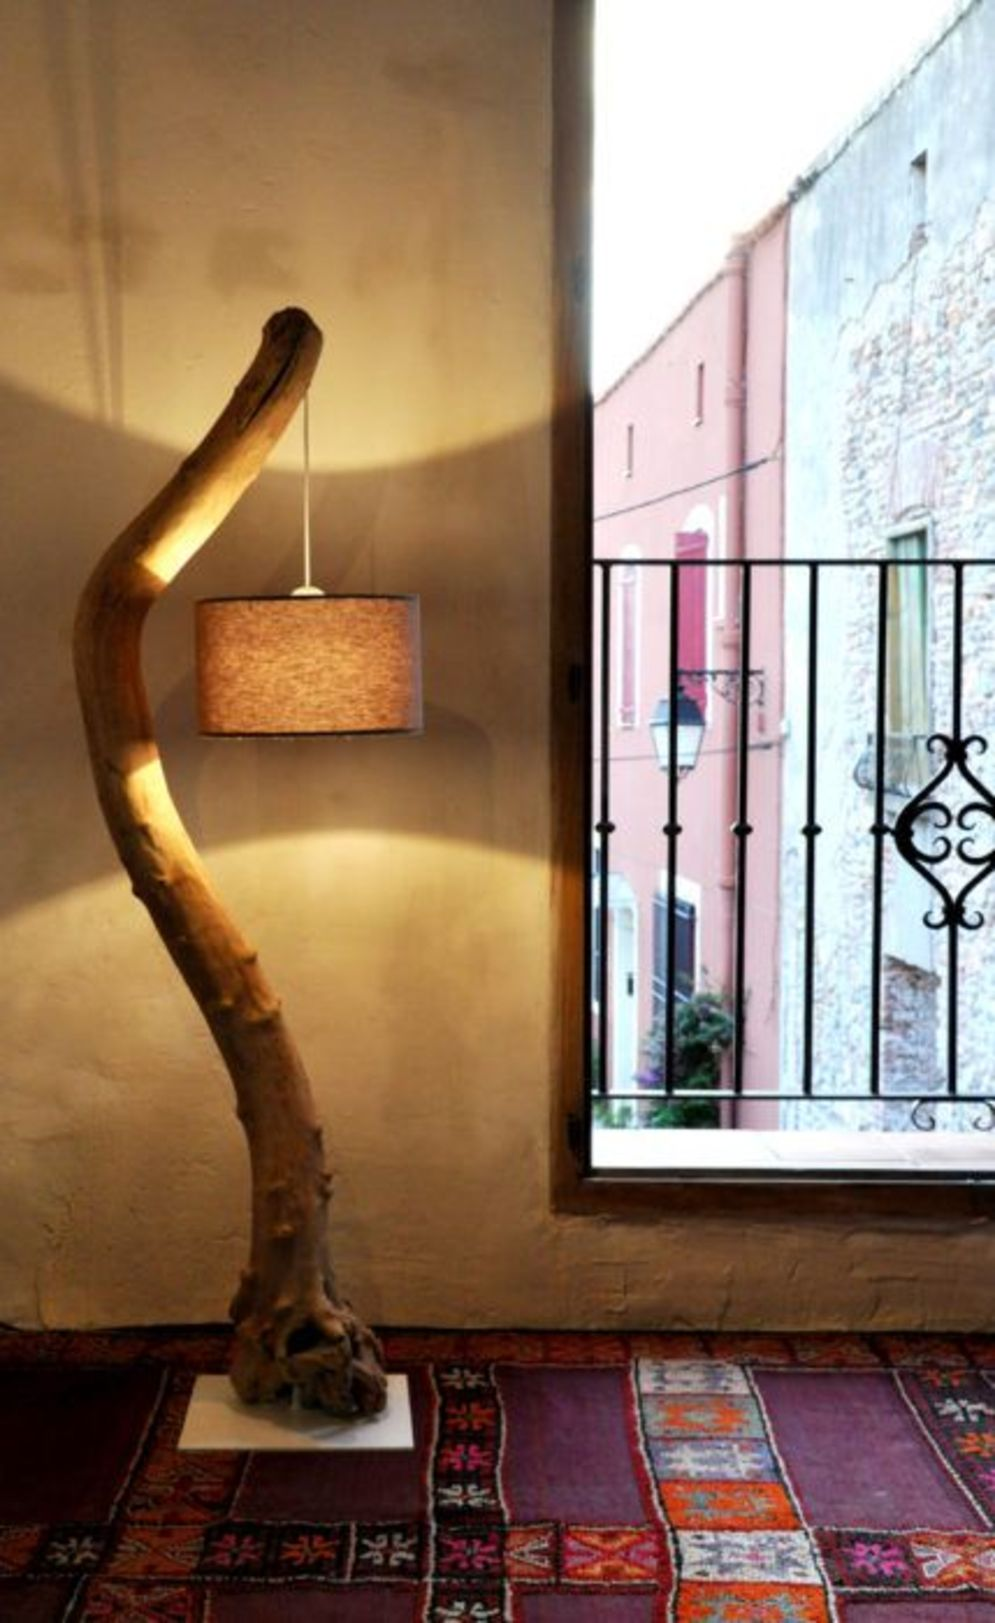 Awesome driftwood lamp stands giving authentic decoration in natural art style Image 8